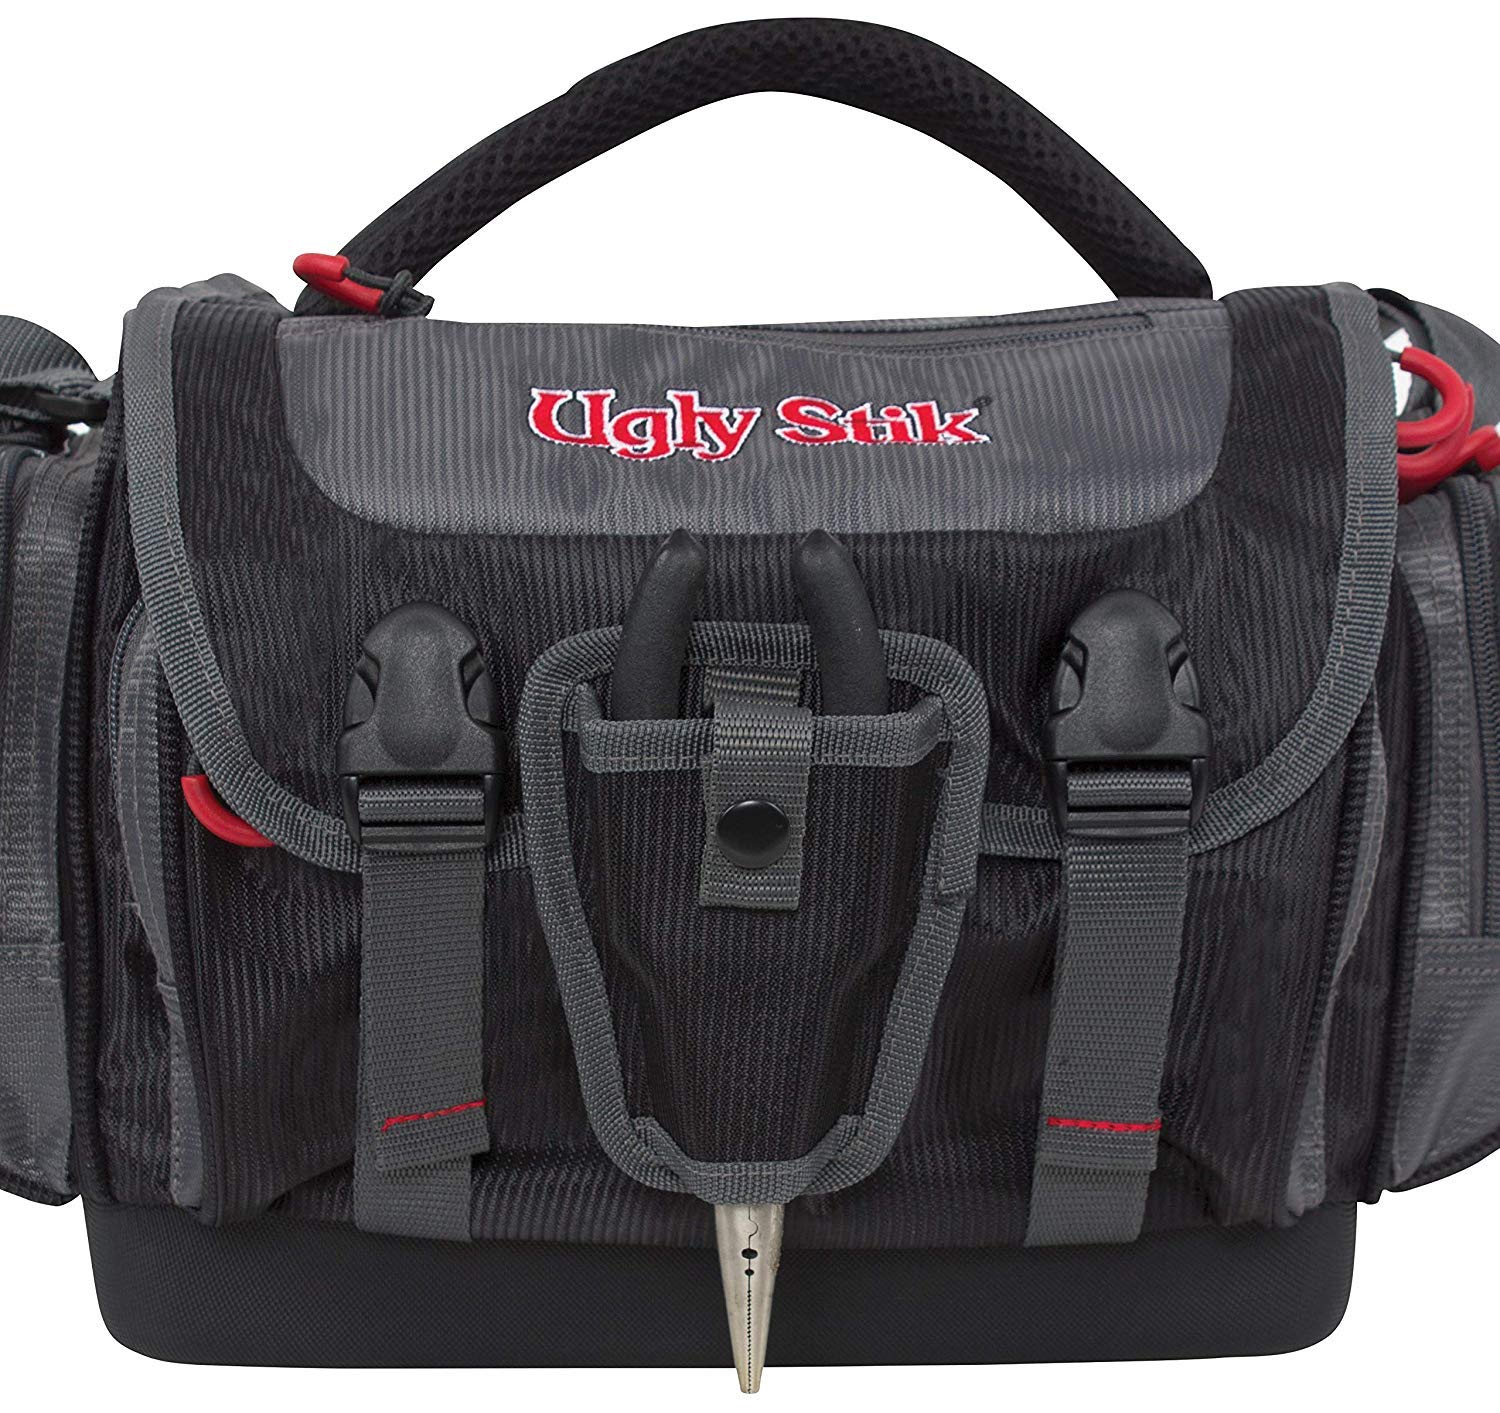 SPECIAL EDITION Ugly Stik Fishing Bag 15-Liter